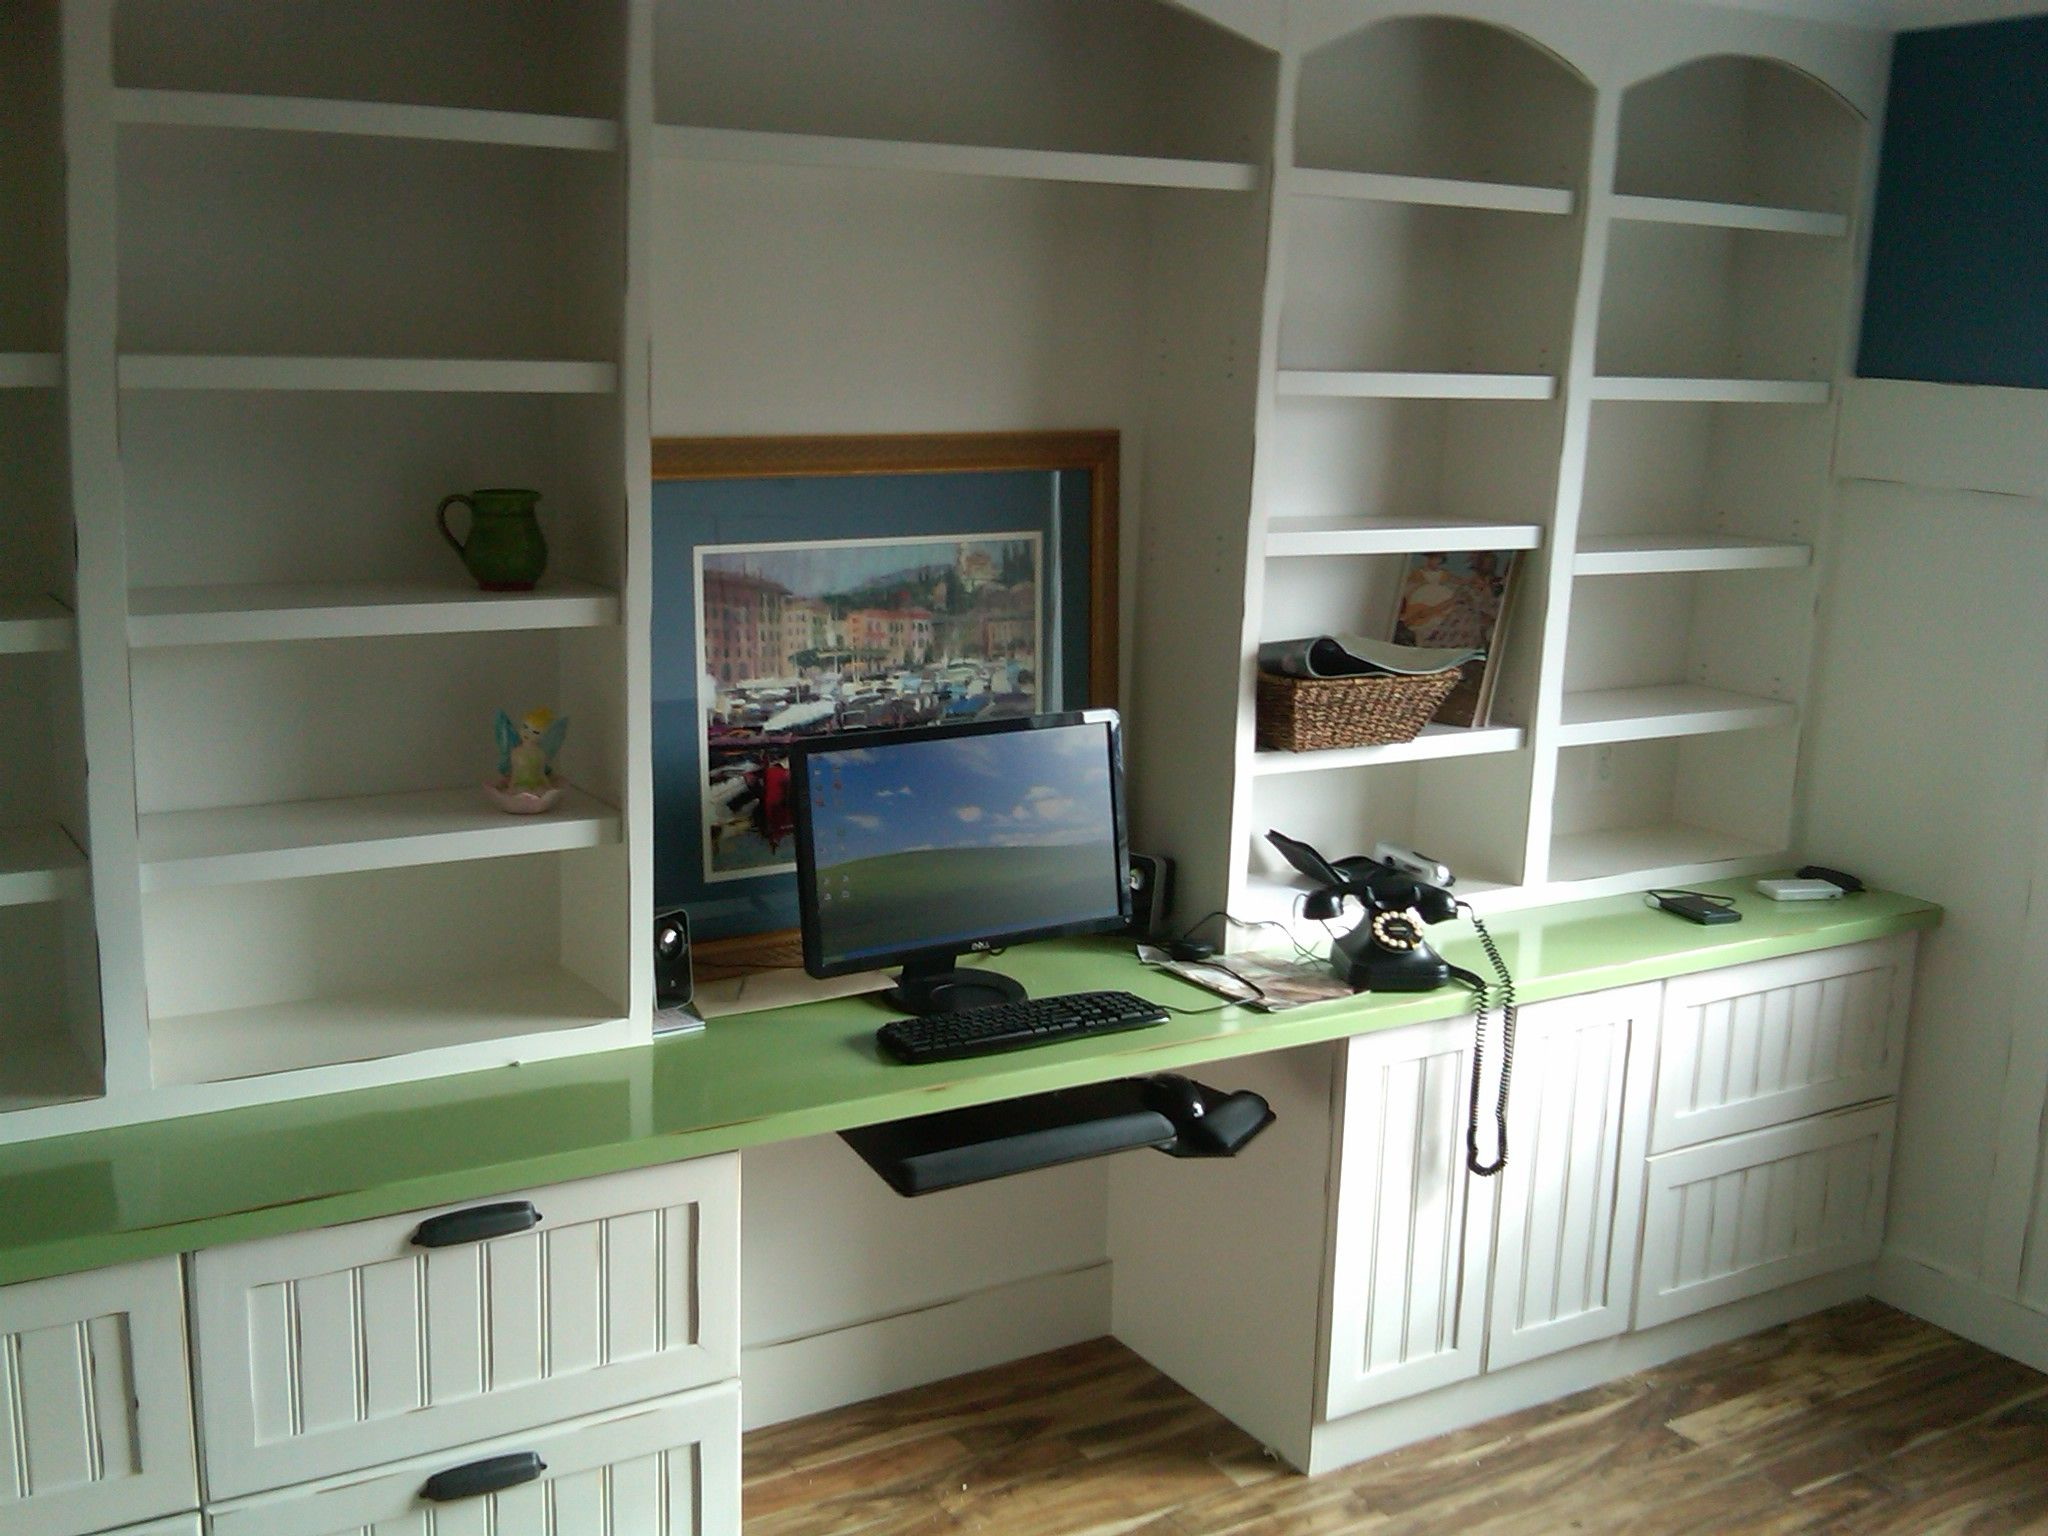 Built In Bookshelves With Built In Desk That Protrudes Out A Bit